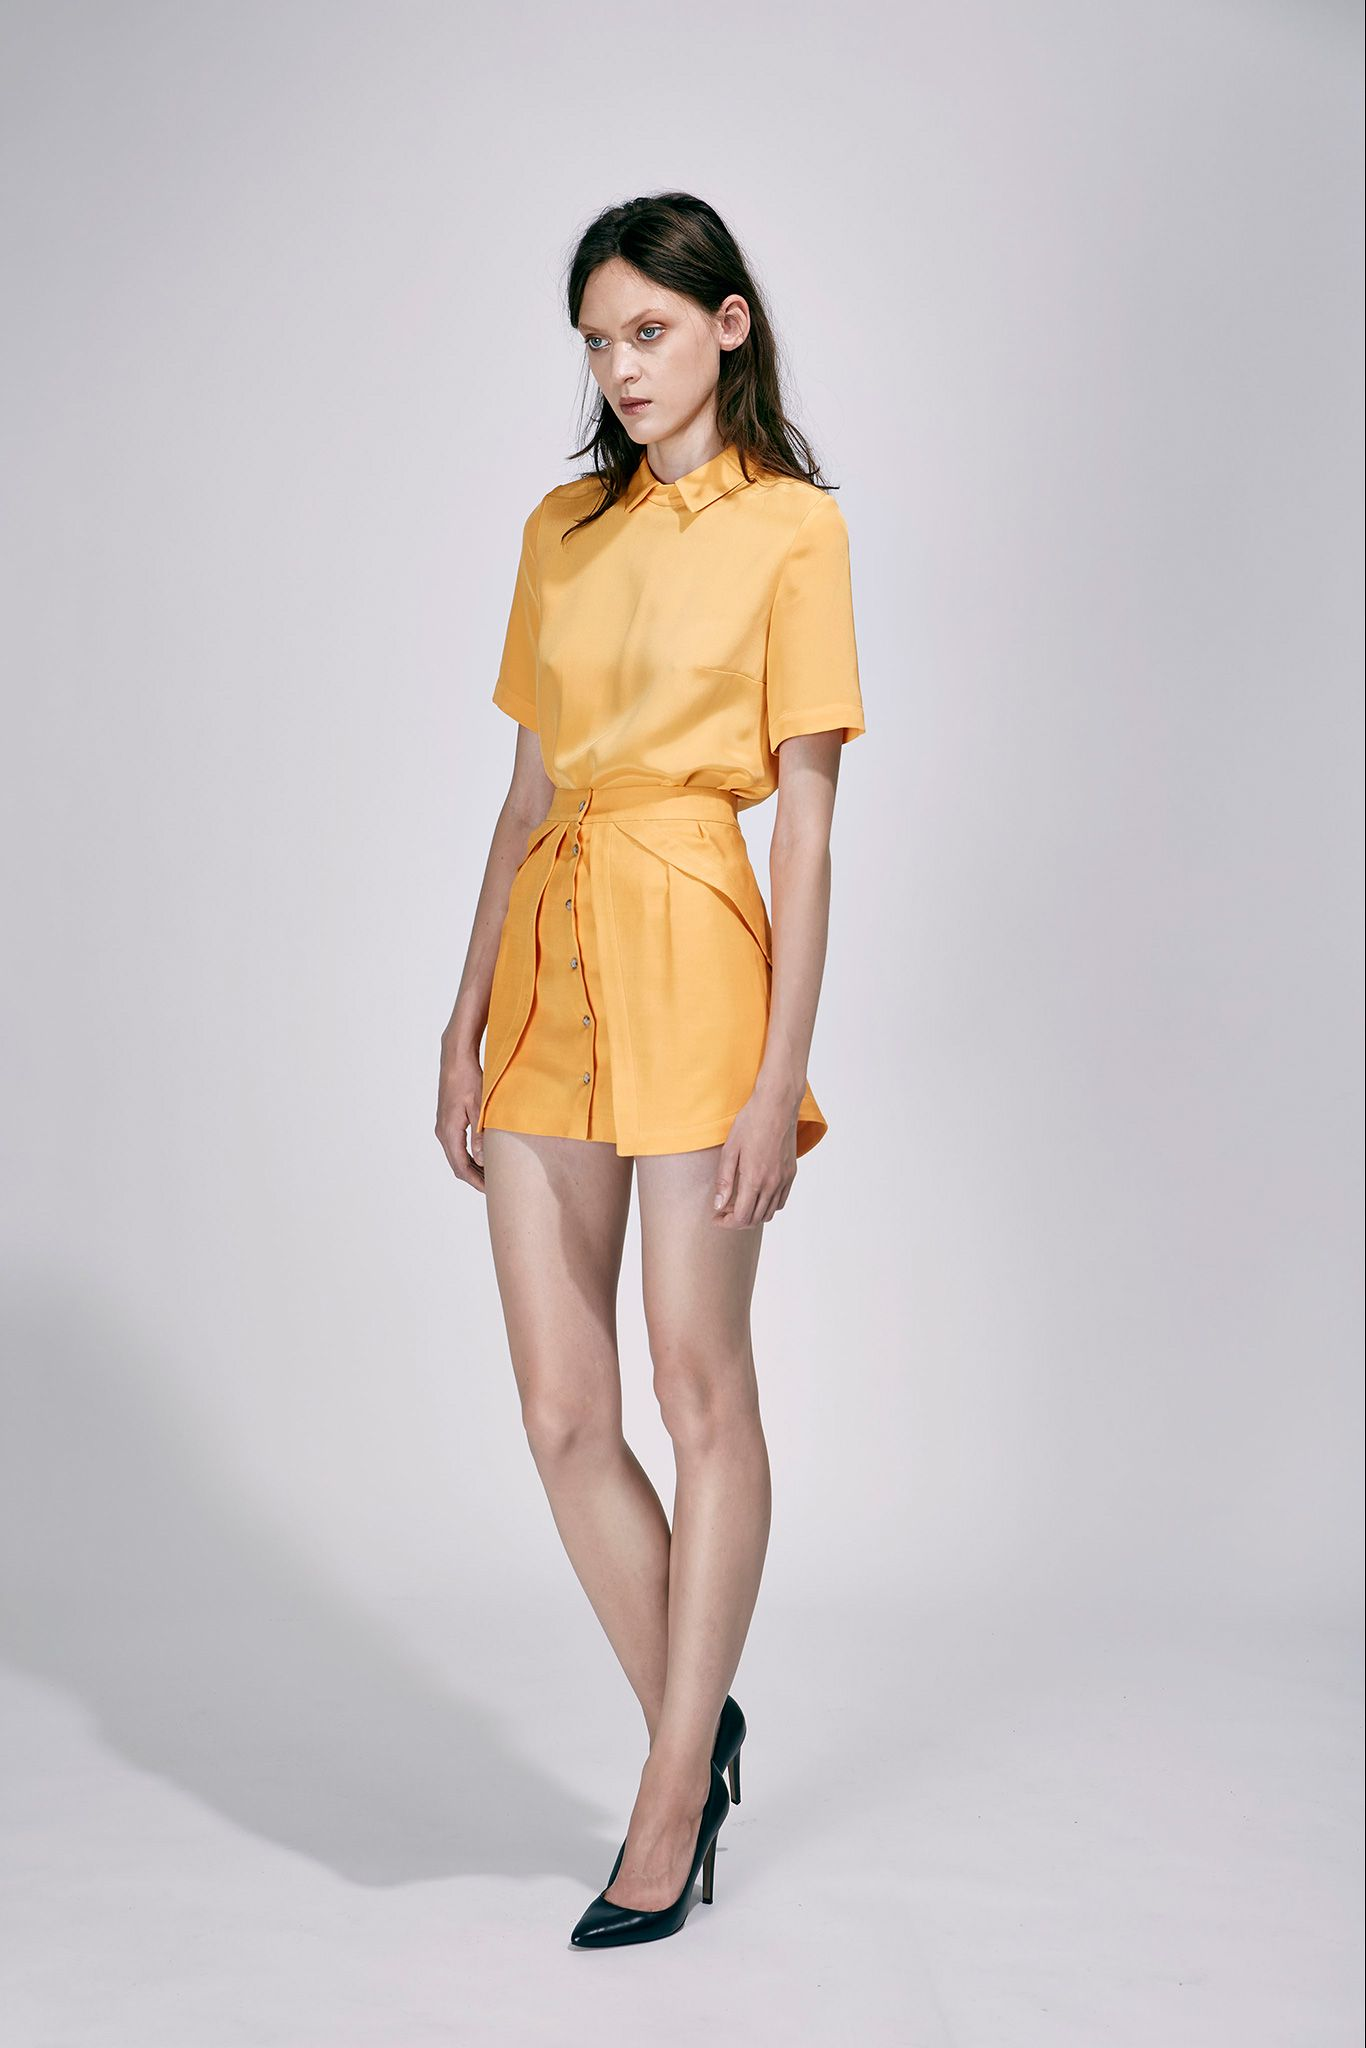 Wayne Spring 2015 Ready-to-Wear - Collection - Gallery - Style.com